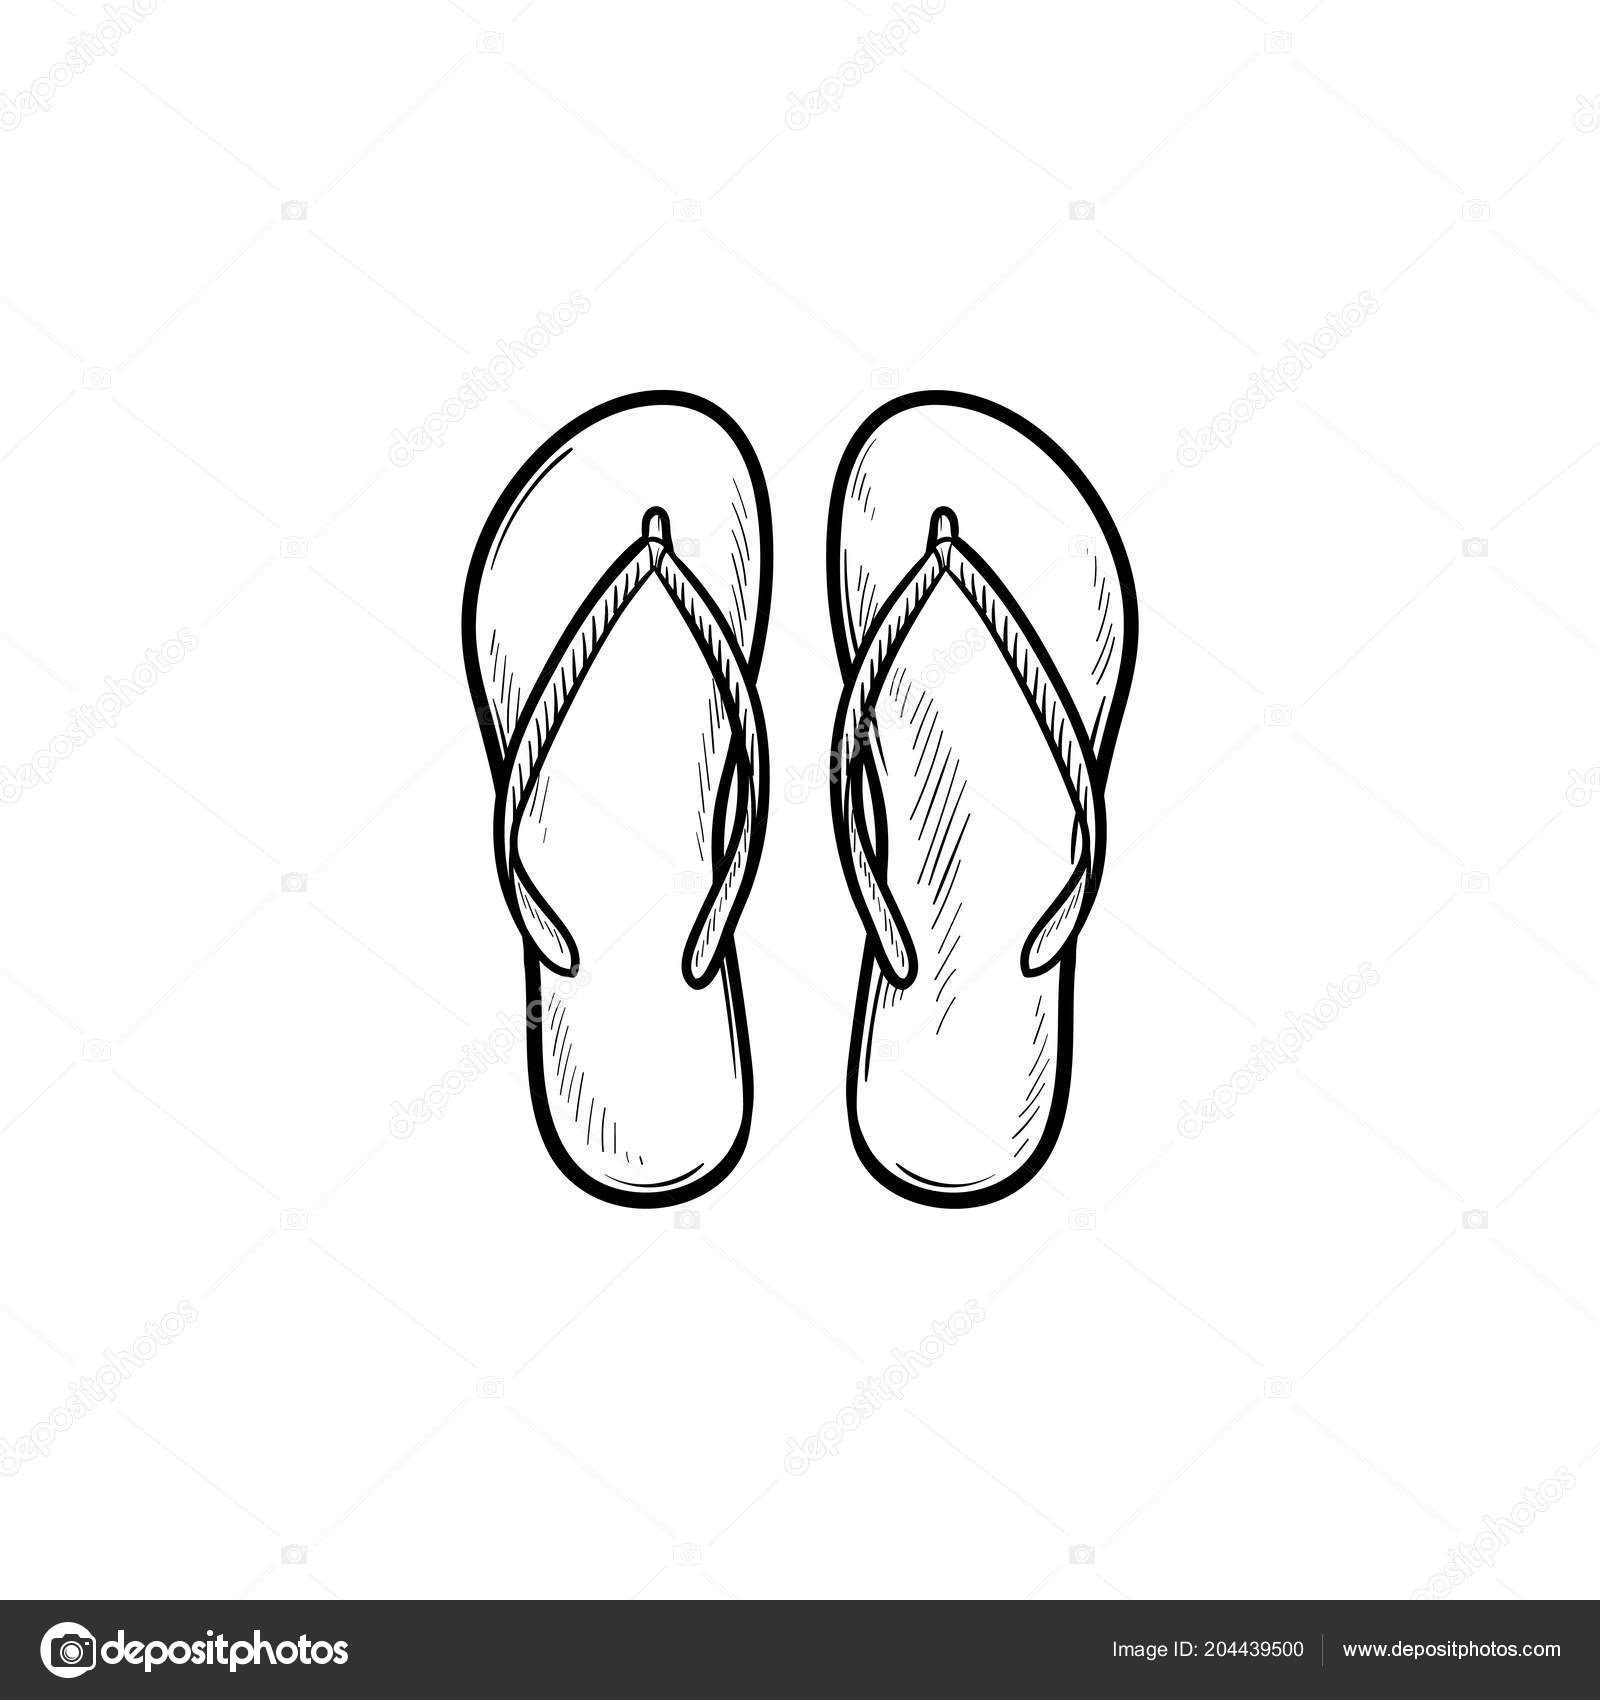 7e6e3098e Pair of flip flop slippers hand drawn outline doodle icon. Summer vacation